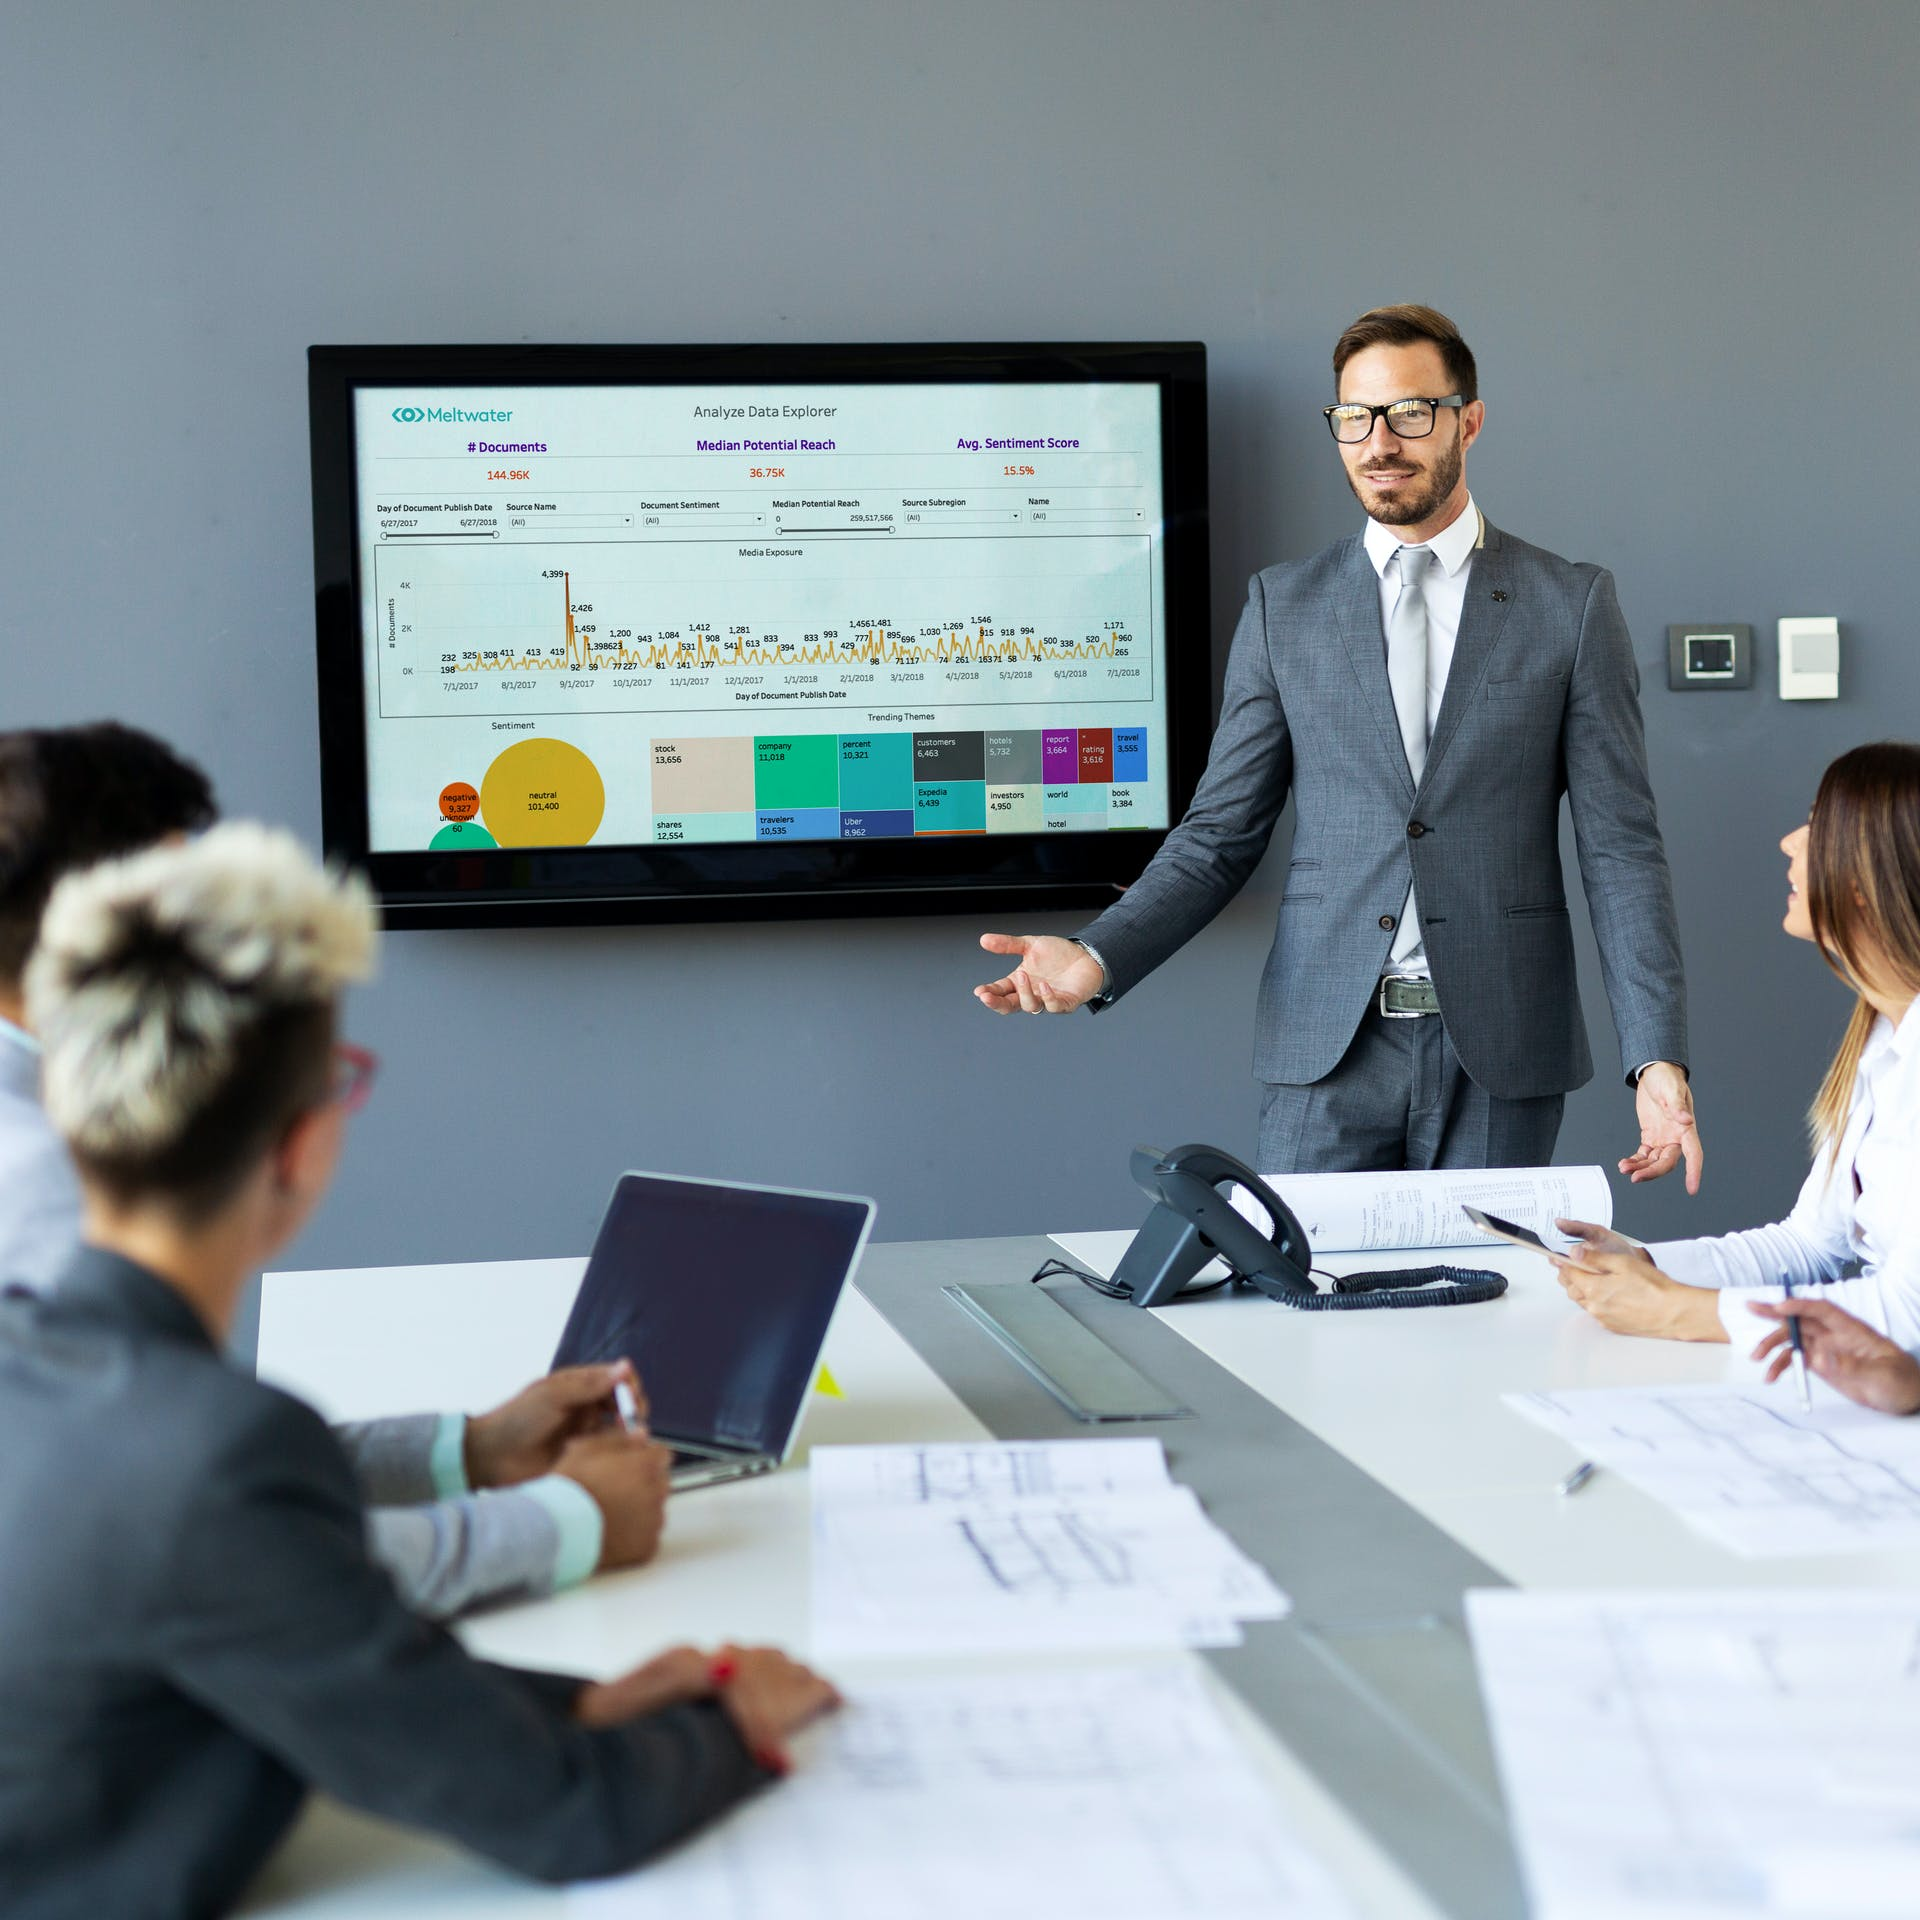 Man presenting in a meeting